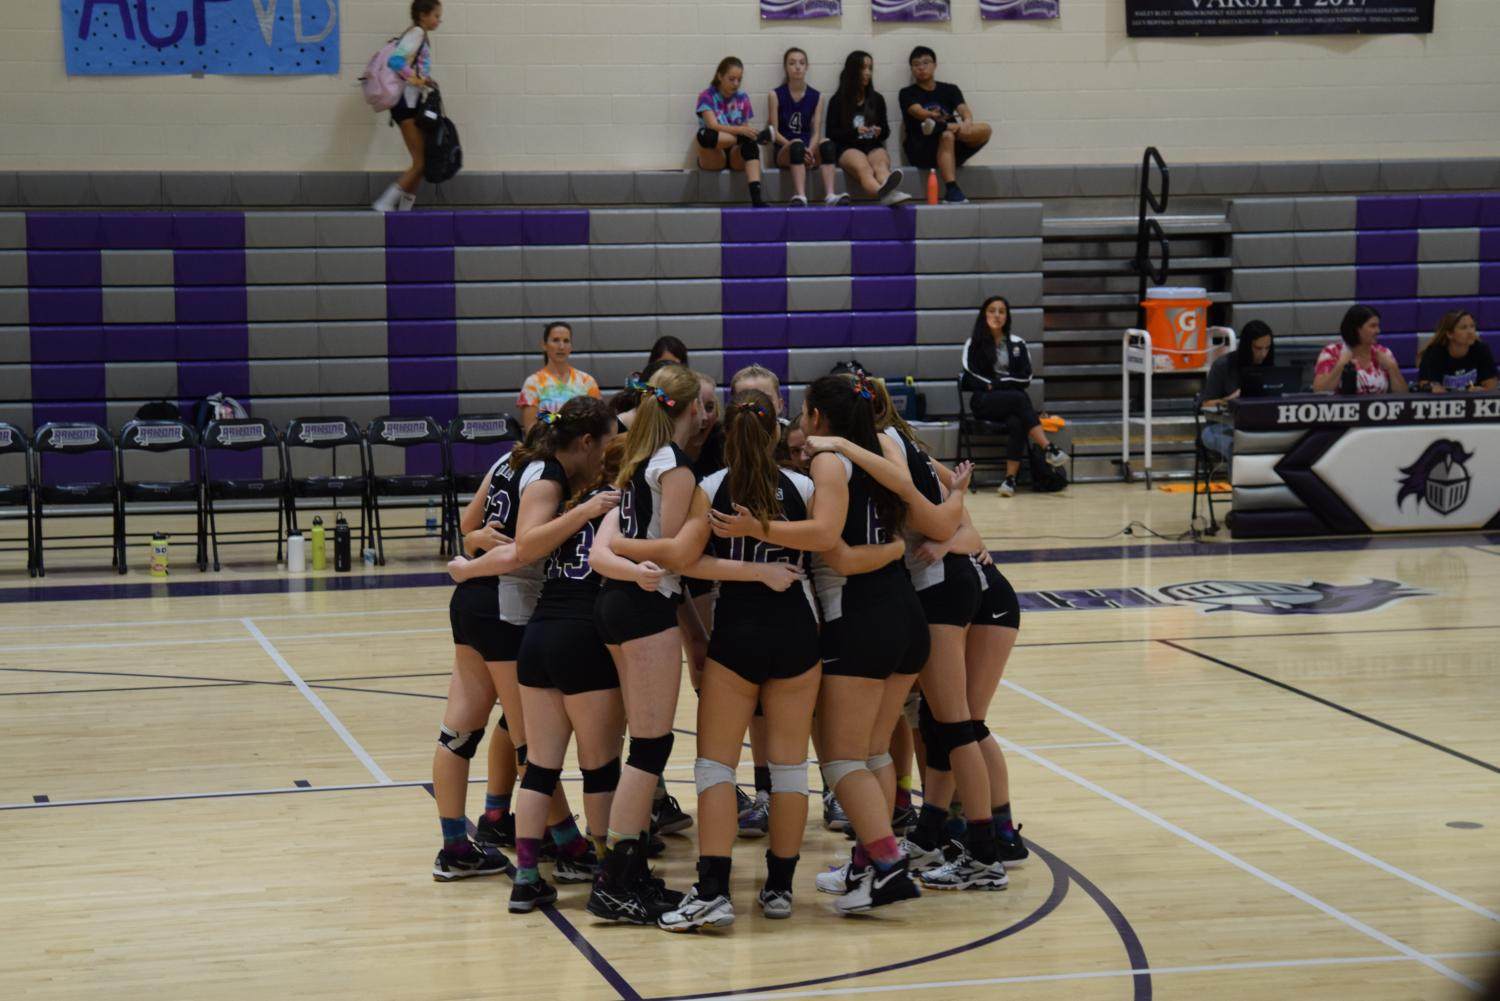 Game time! The Knights huddle before their game Monday night against Santa Cruz Valley. ACP would go on to win in 3 sets on Madi Bonfigt night.